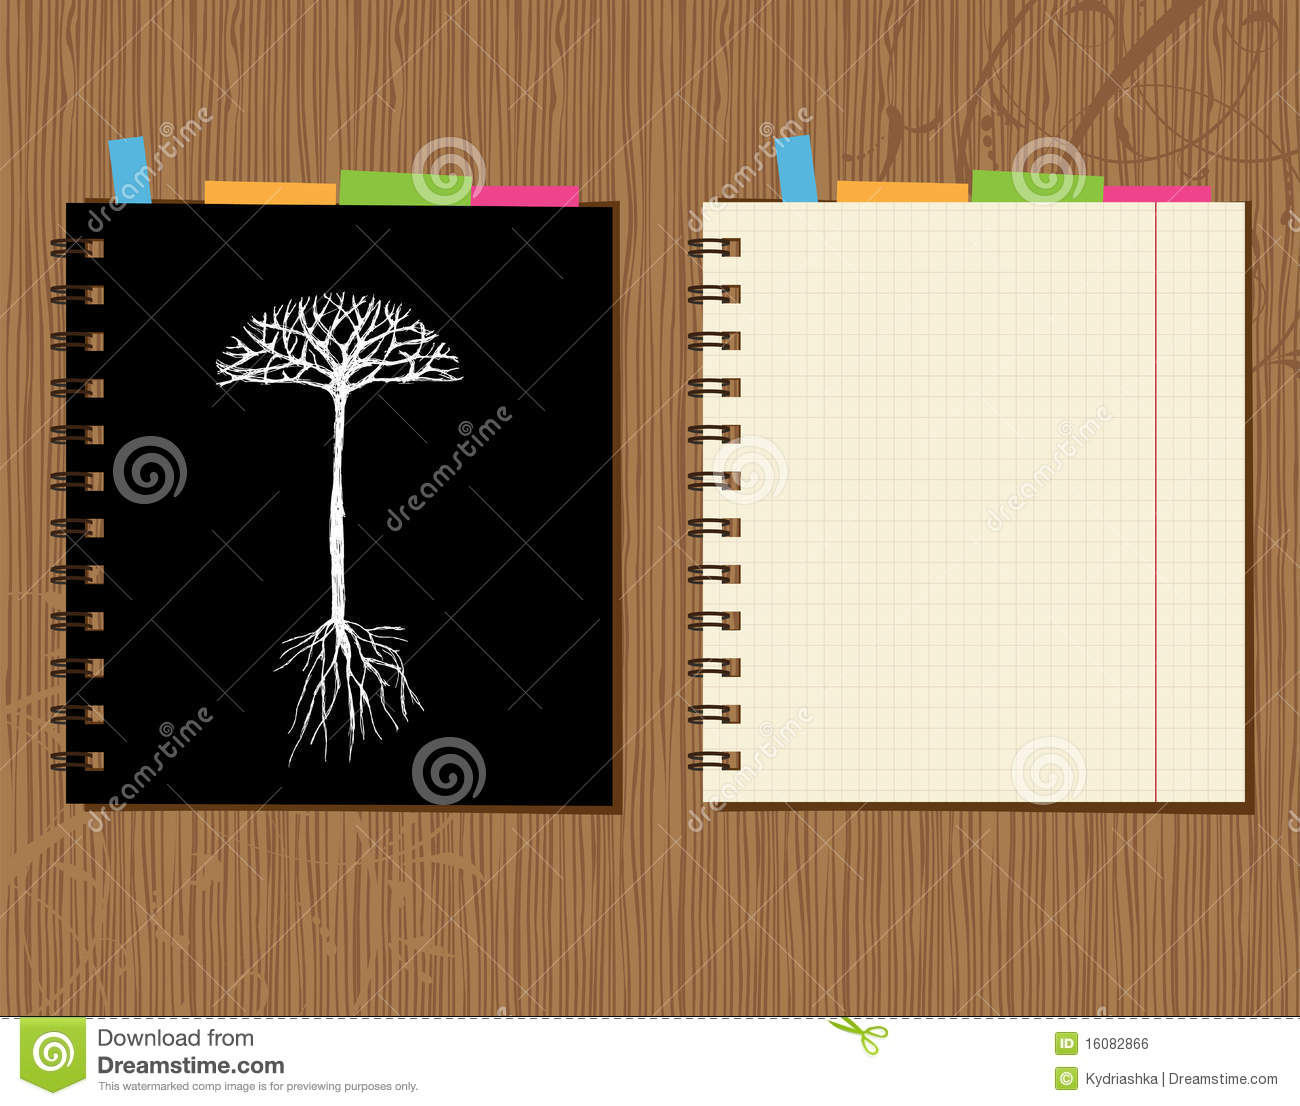 Notebook Cover And Page Design Wooden Background Royalty Free Stock Image Image 16082866